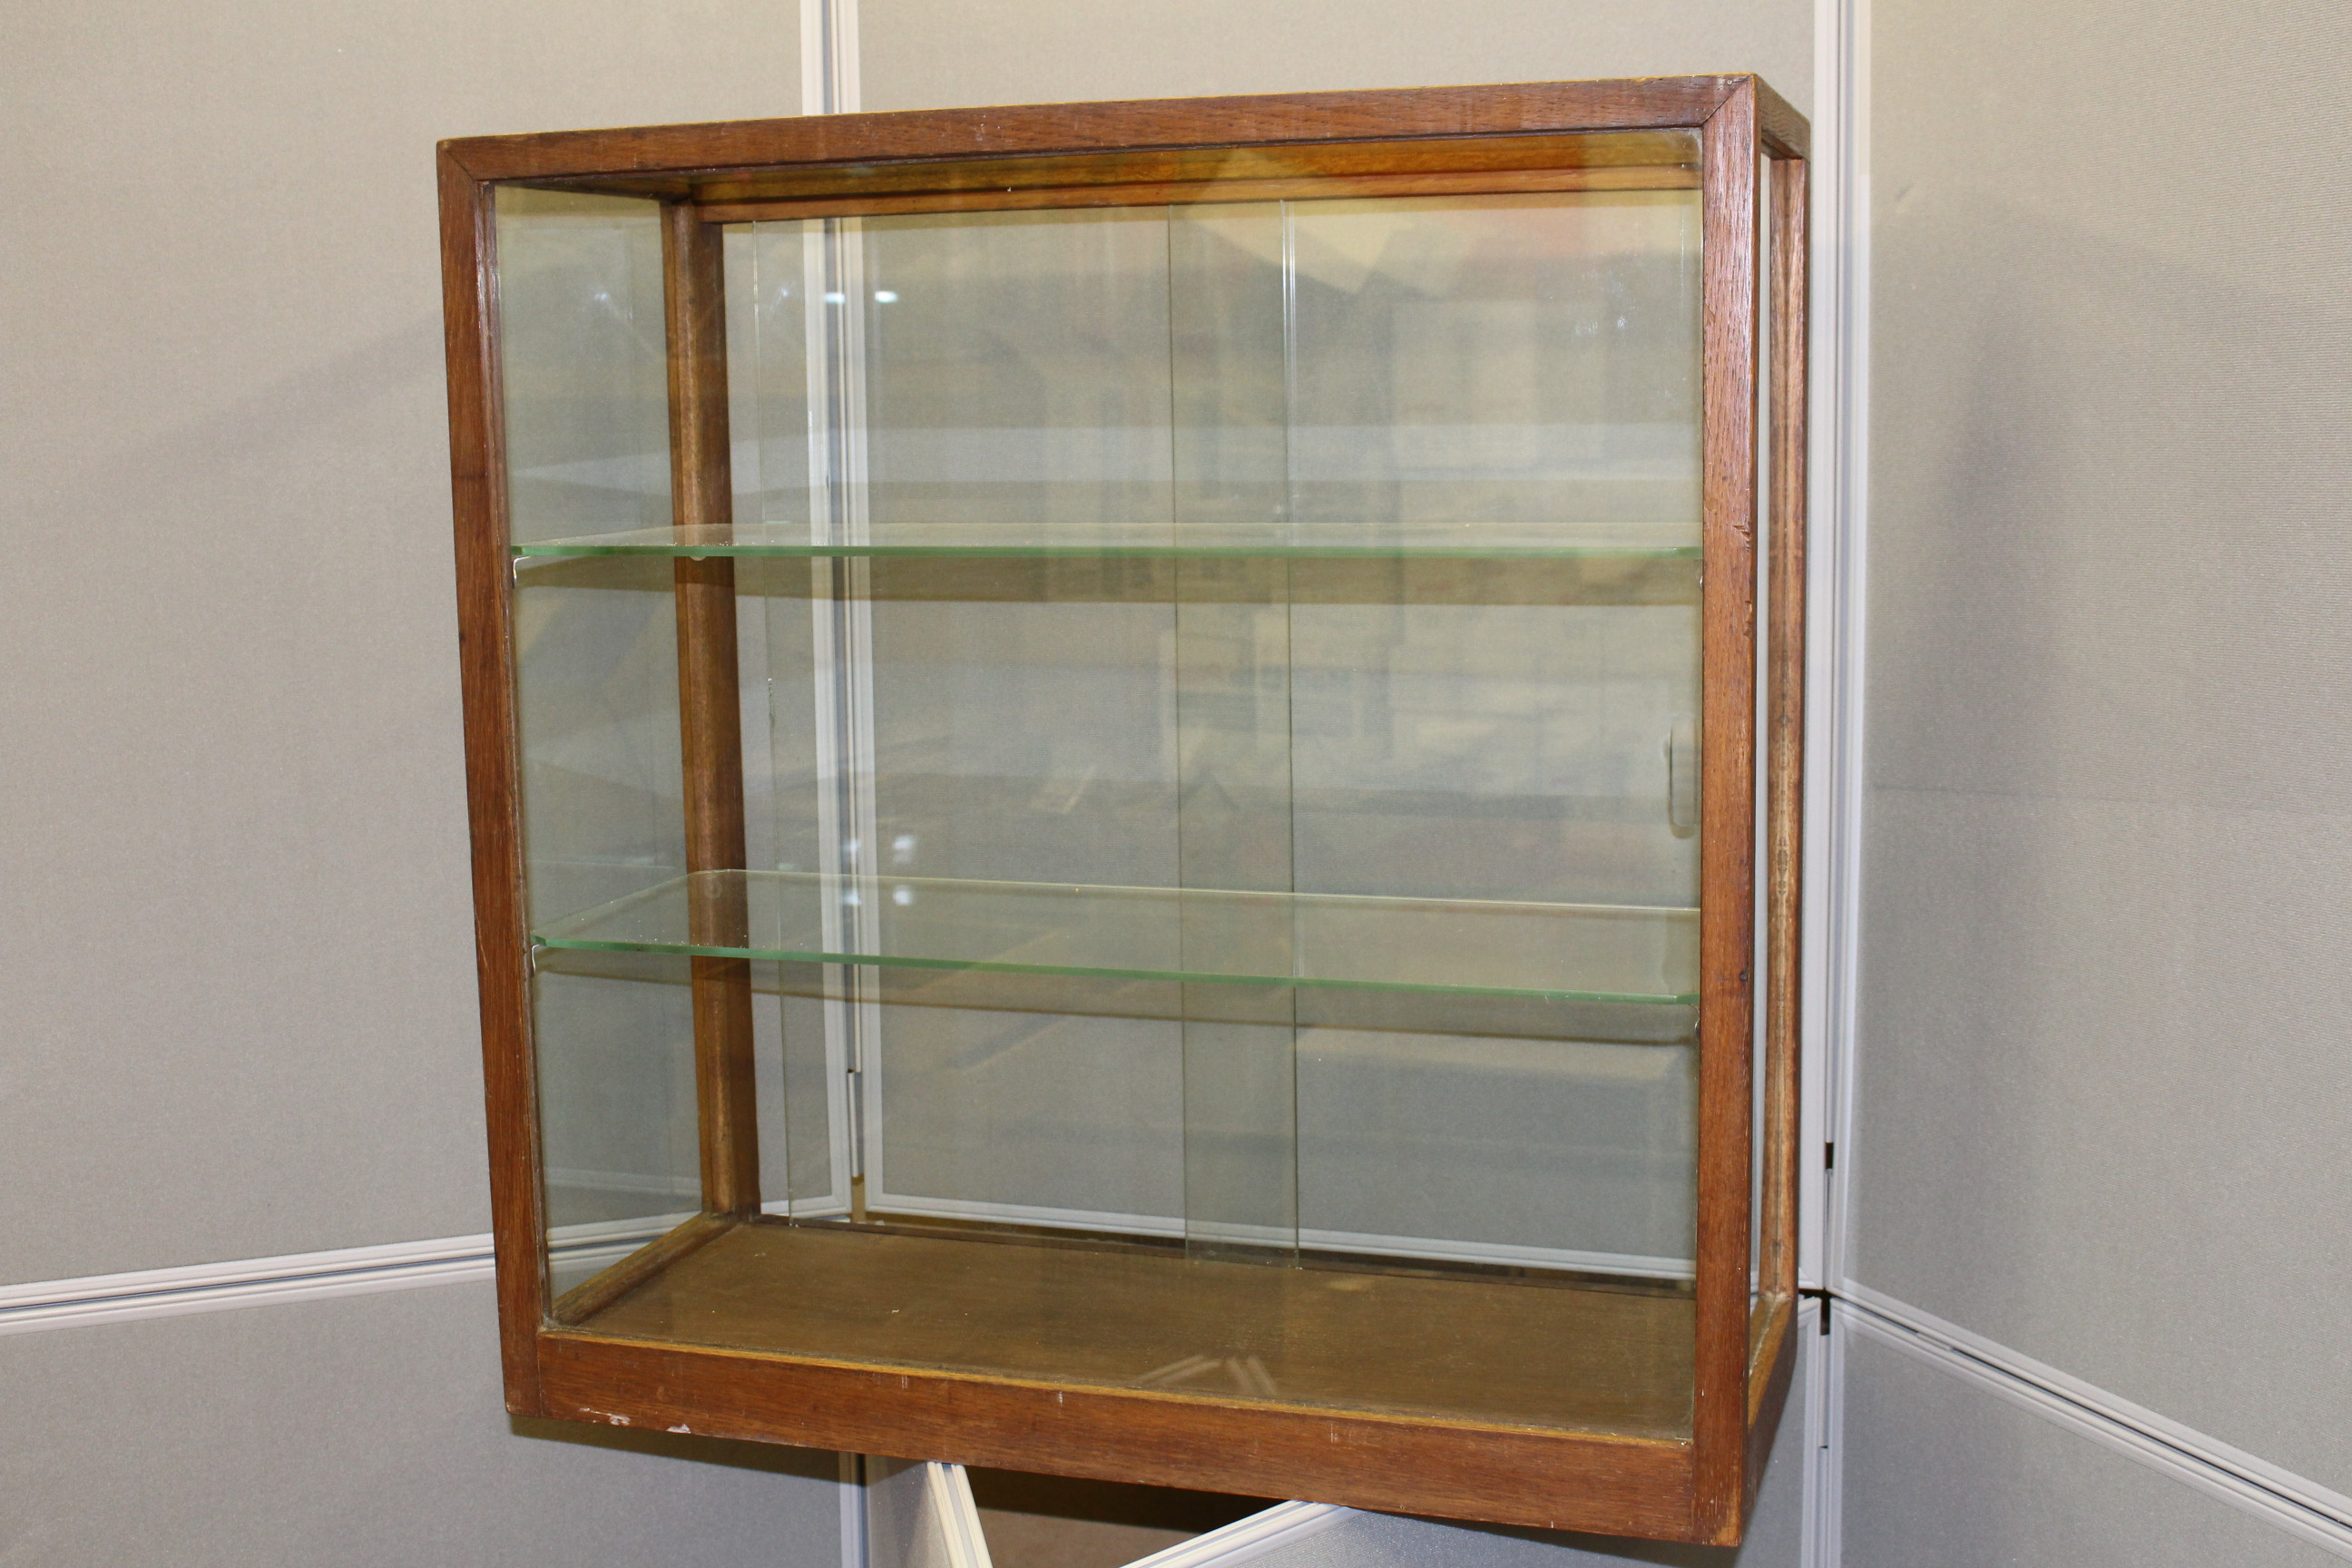 Picture Gallery for Cabinet 9902 Display Cabinet